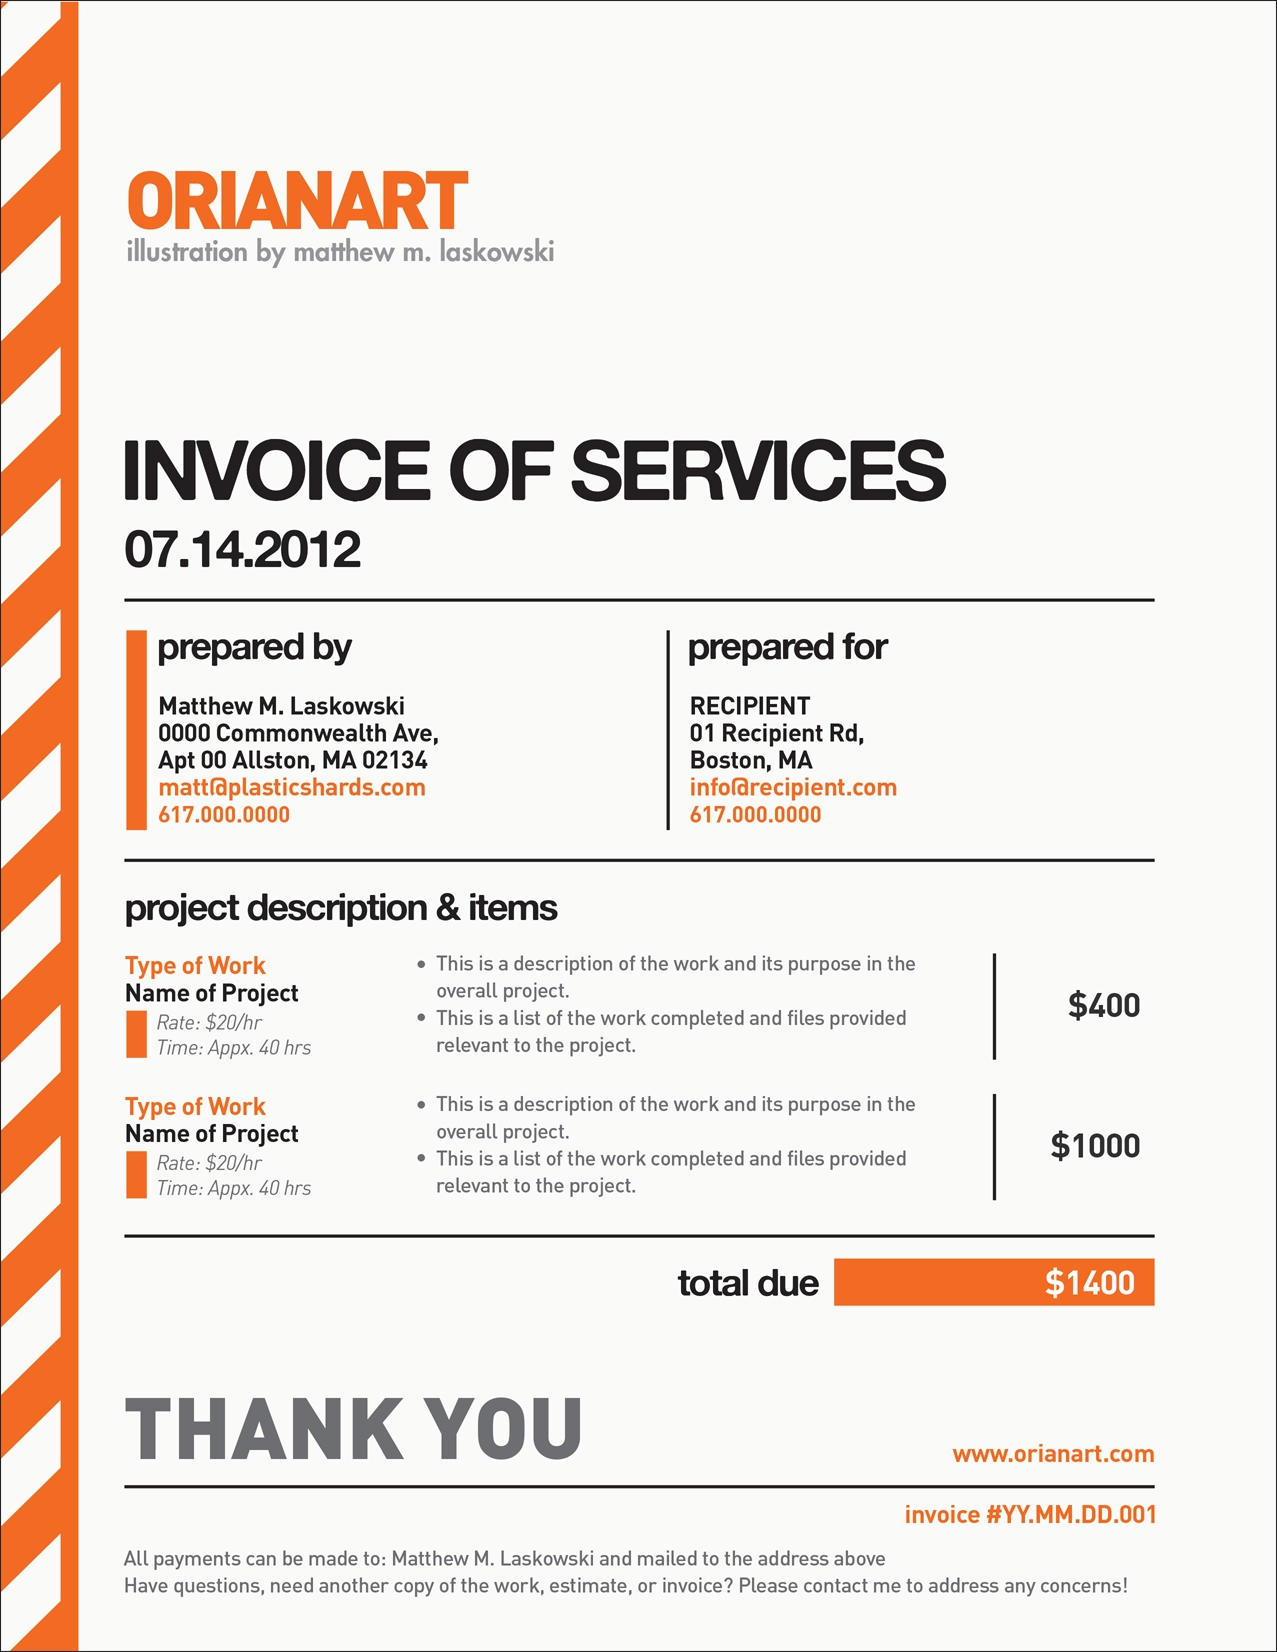 orianart invoice template indesign